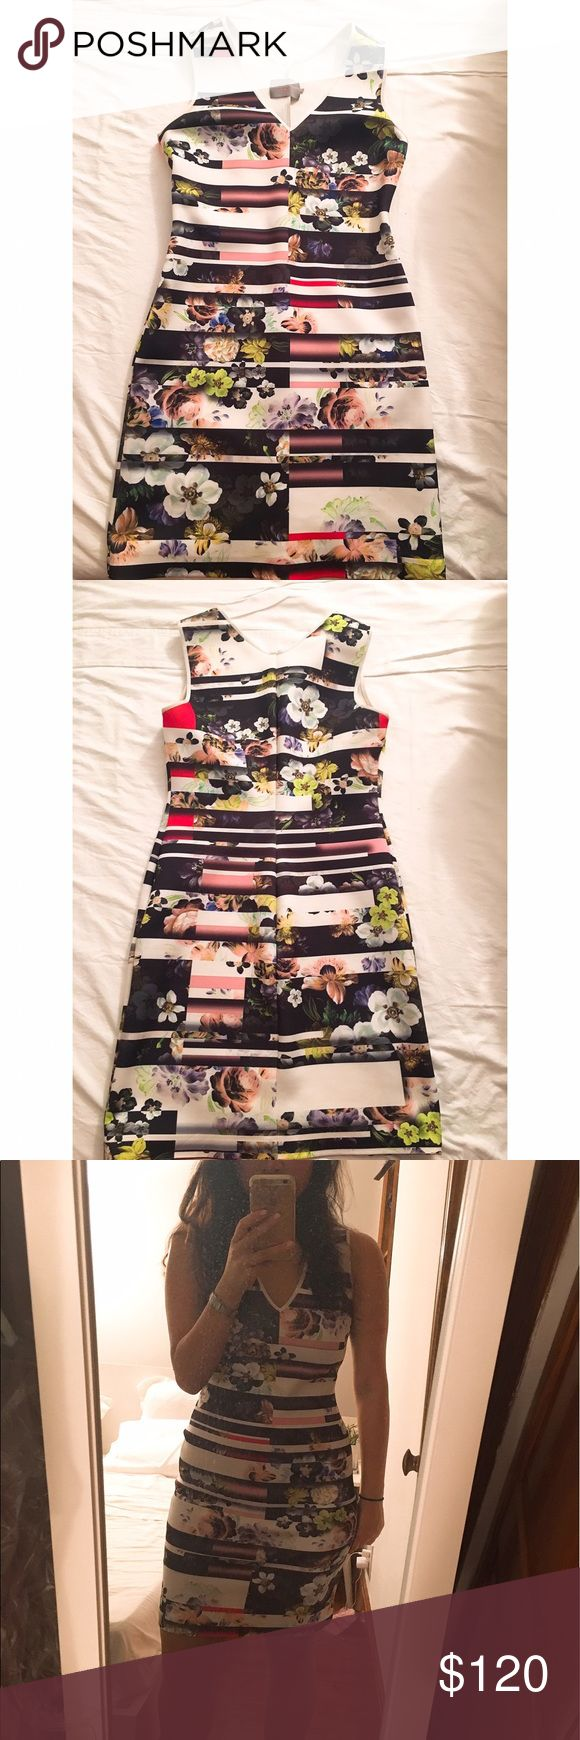 Clover Canyon print neoprene dress sz L Clover Canyon print neoprene dress sz L- worn only twice. No stains or damage. Clover Canyon Dresses Mini